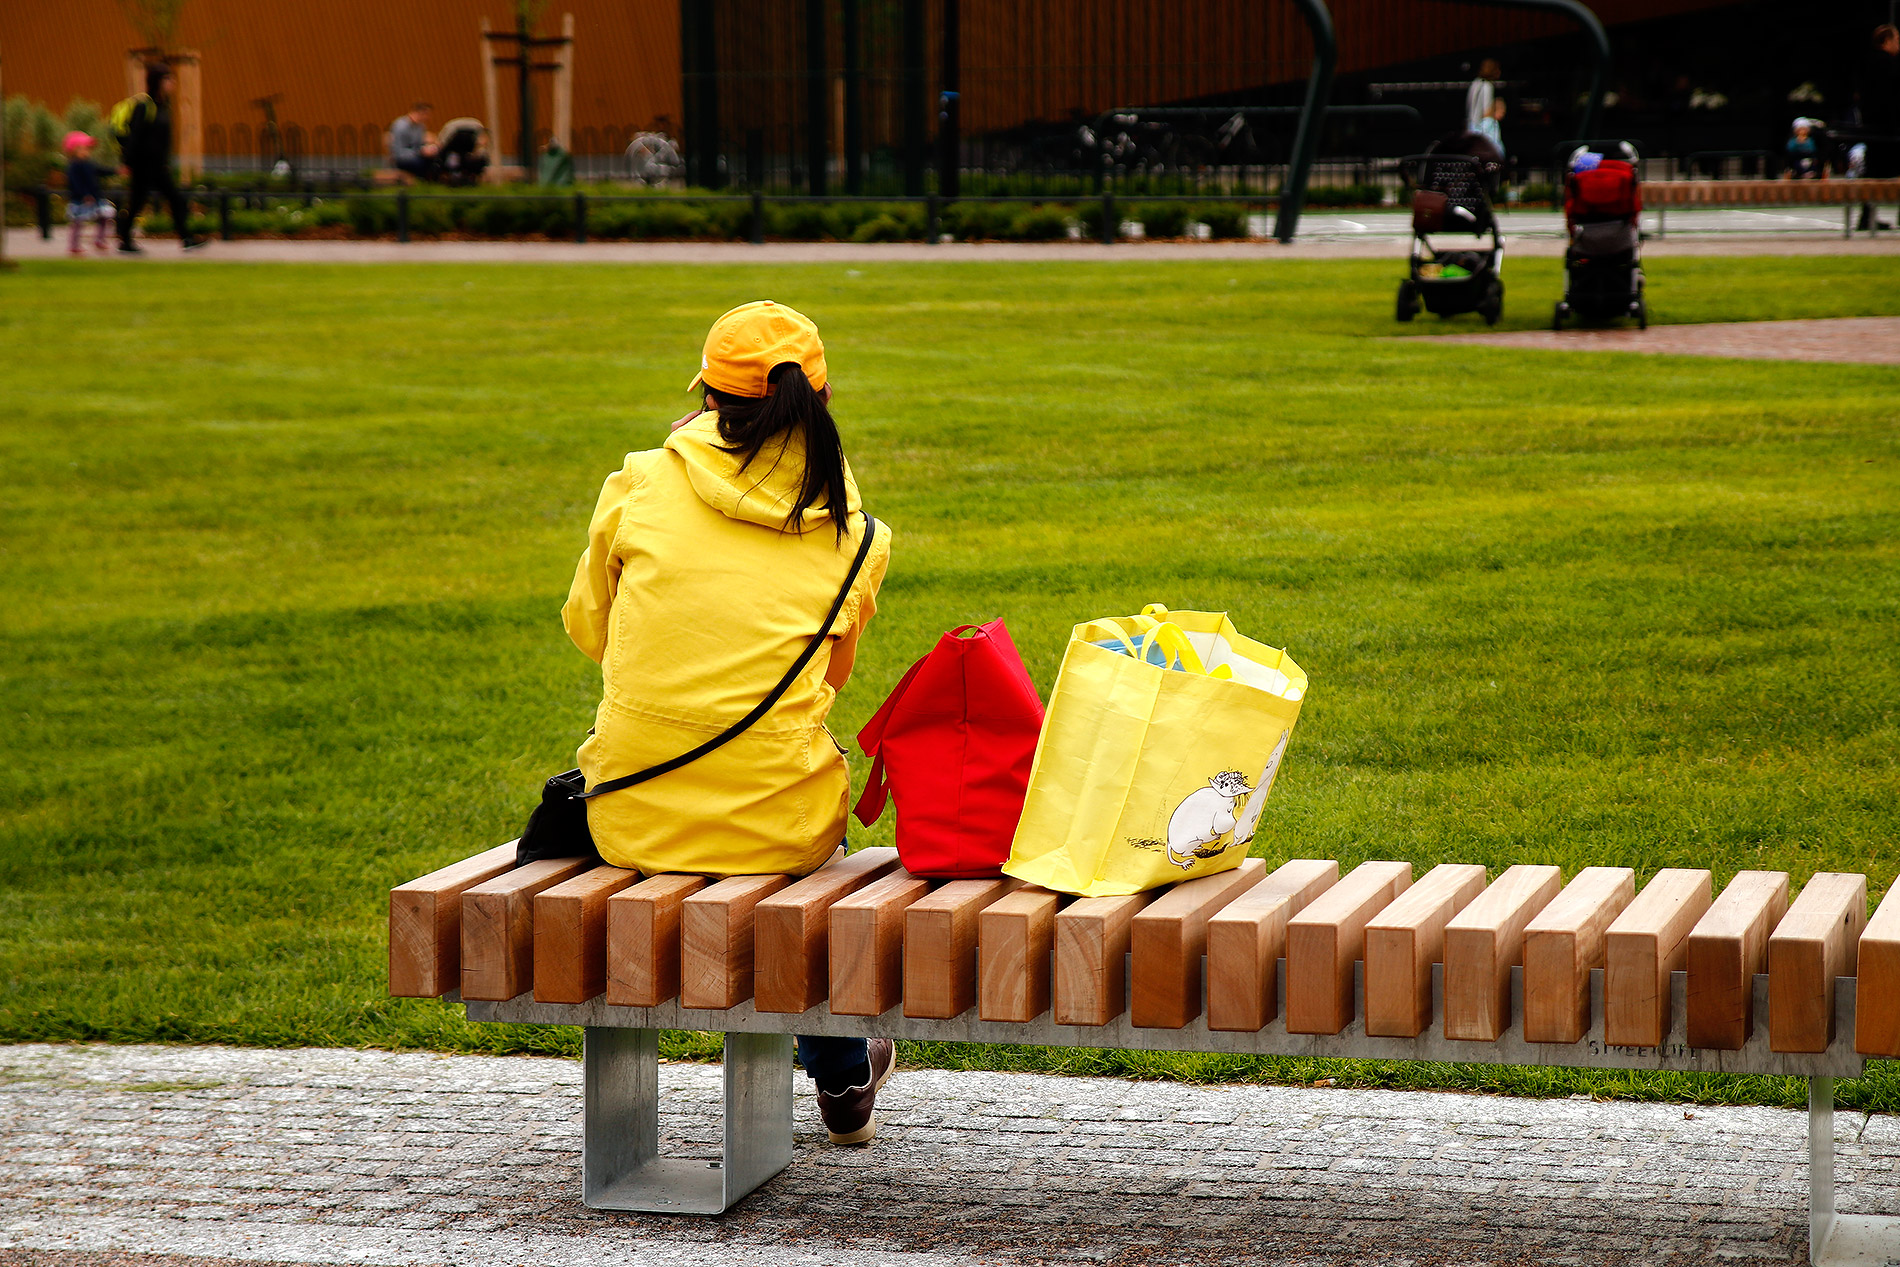 A woman is relaxing on the bench. Picture: Tony Öhberg for Finland Today